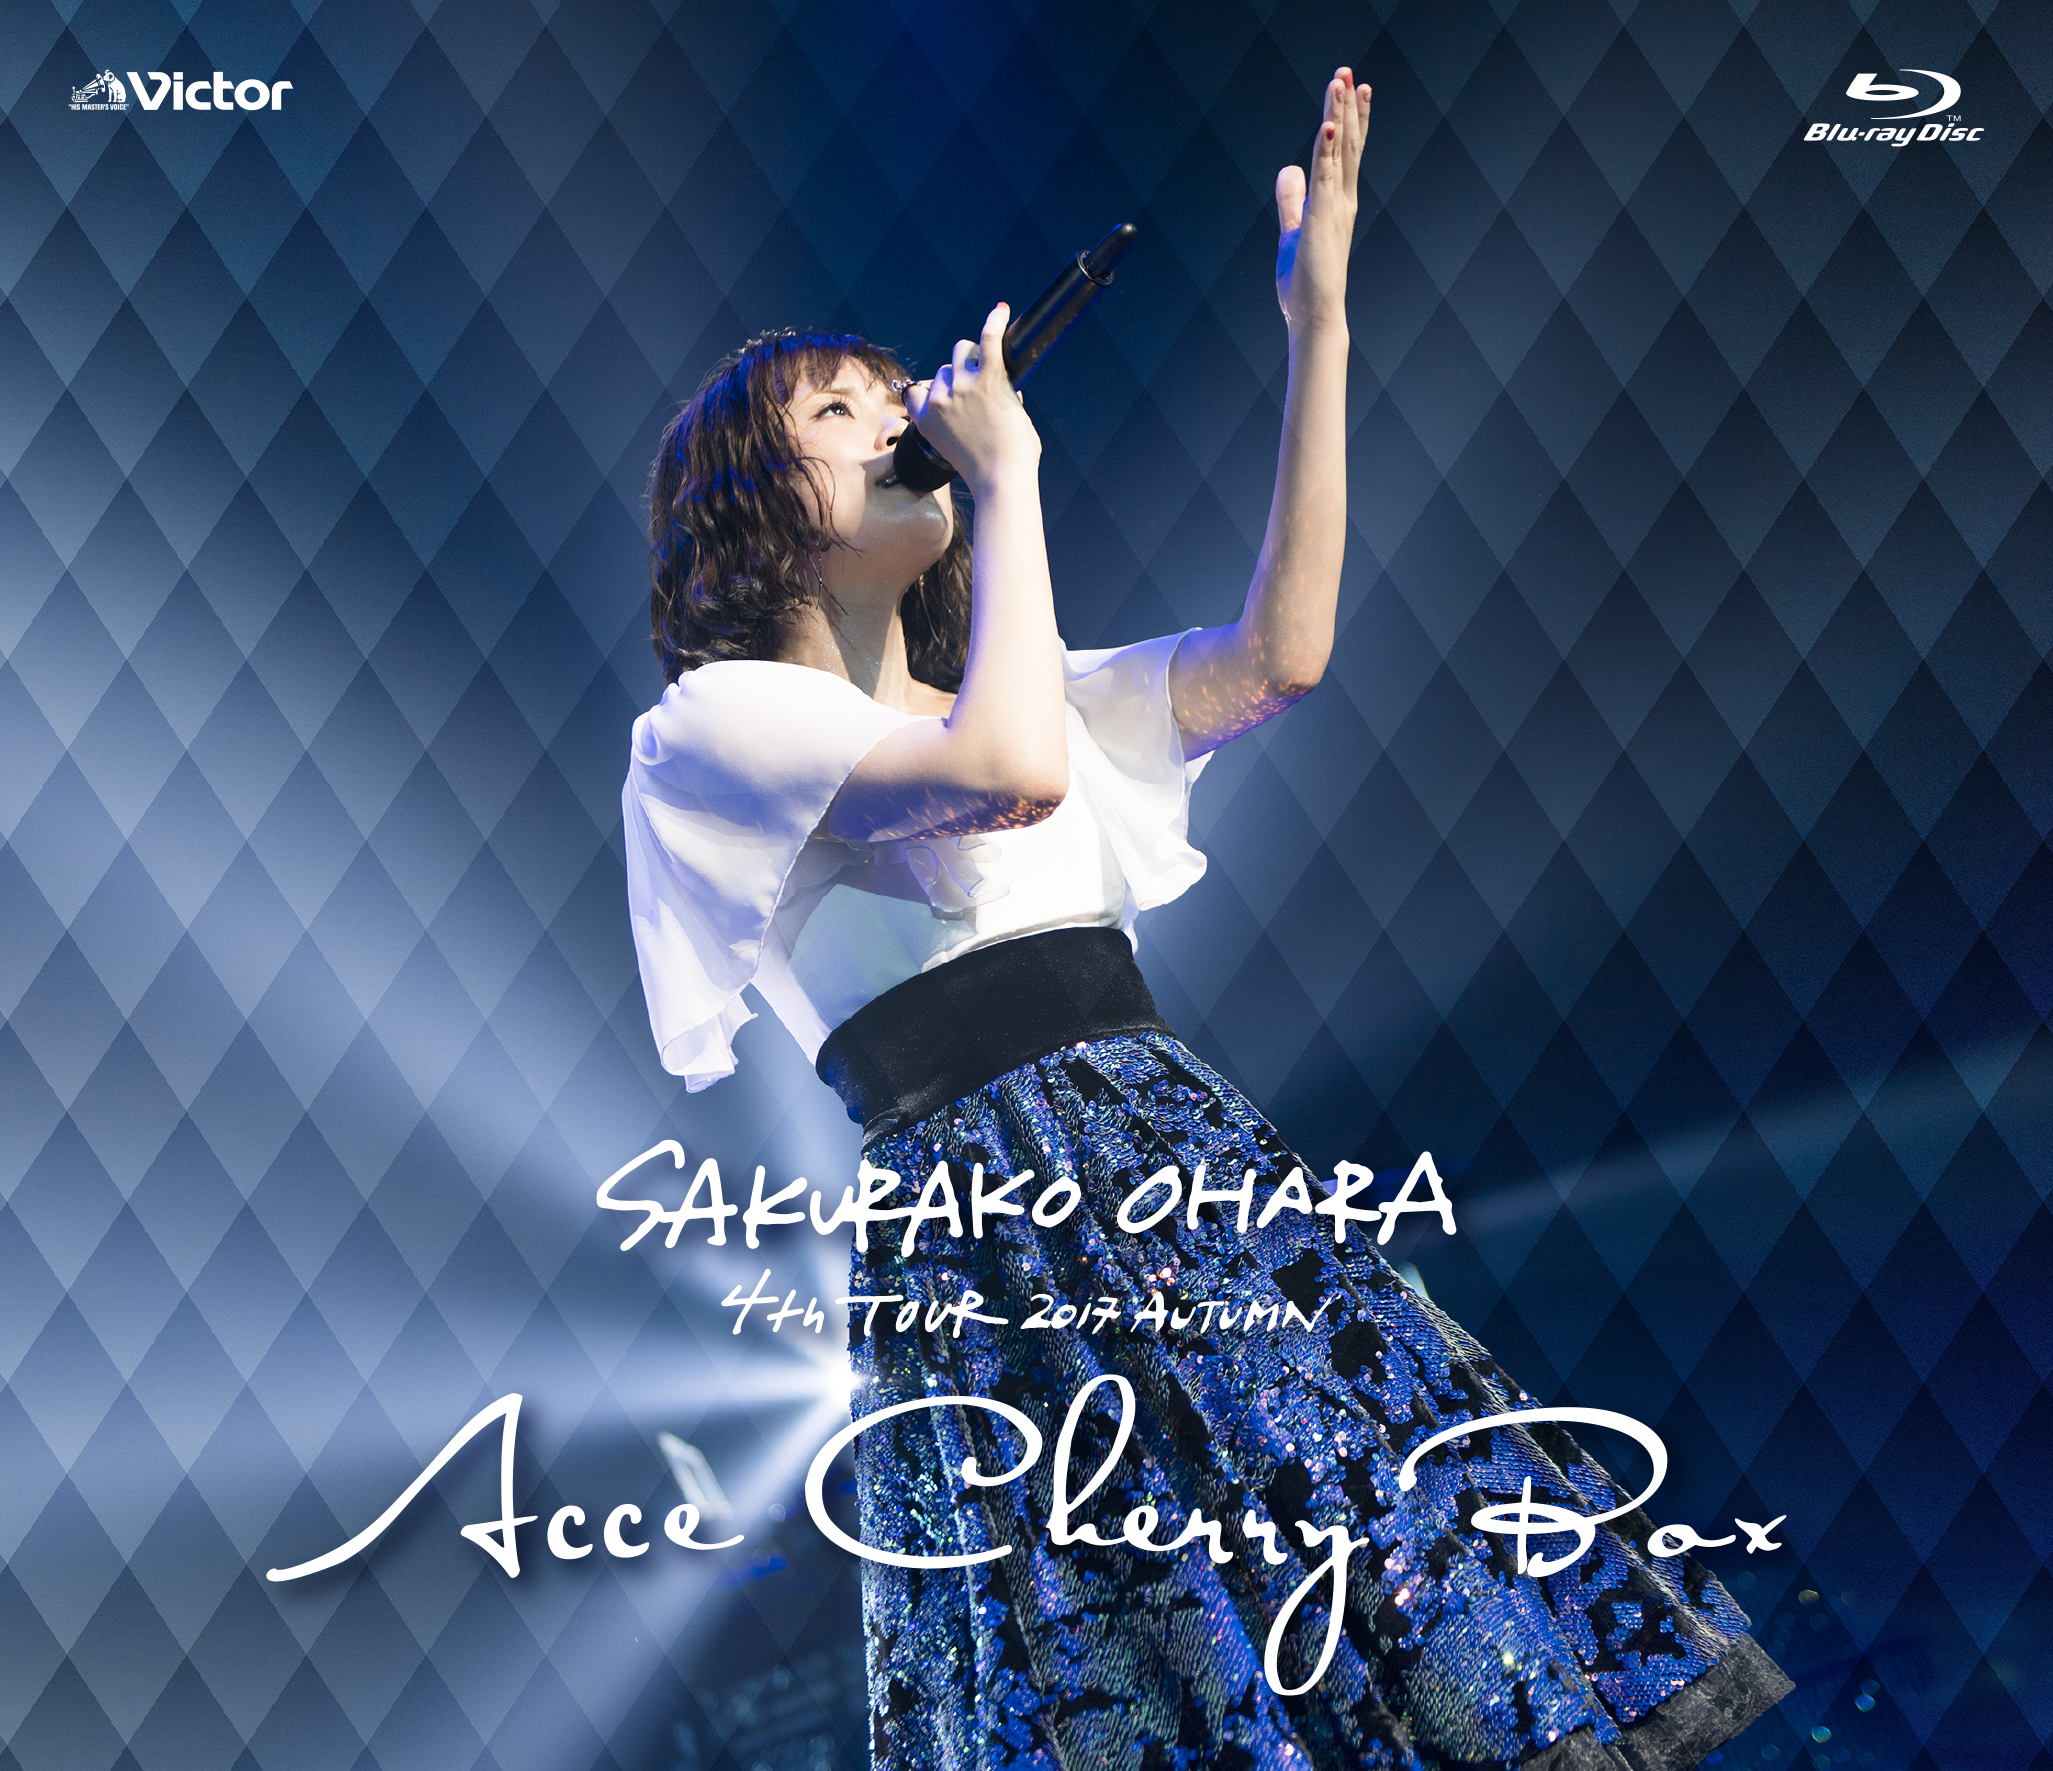 Blu-ray&DVD『大原櫻子 4th TOUR 2017 AUTUMN ~ACCECHERRY BOX~』【通常盤Blu-ray】